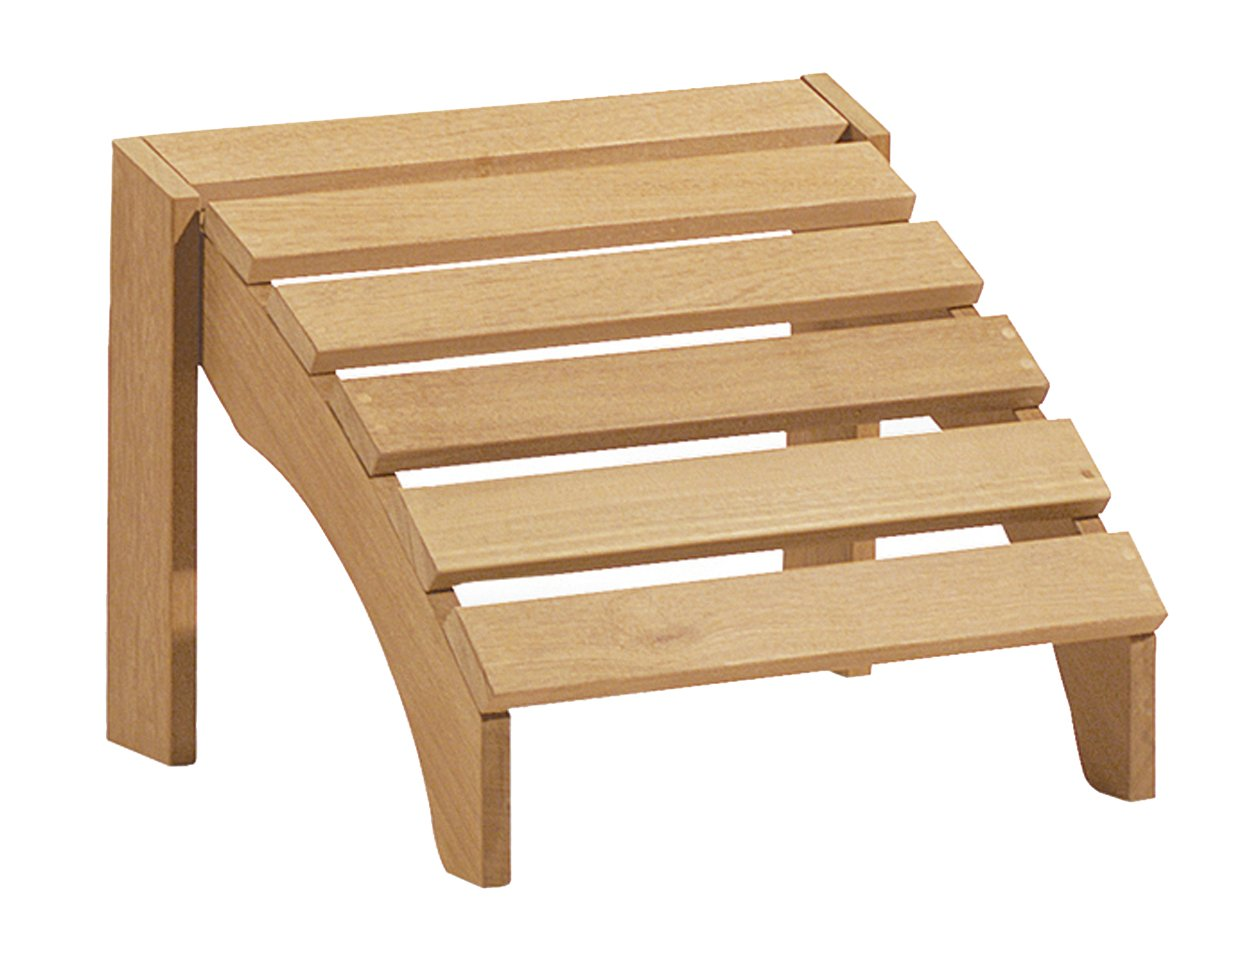 Amazon.com : Oxford Garden Shorea Adirondack Footstool : Adirondack Chairs  : Garden U0026 Outdoor